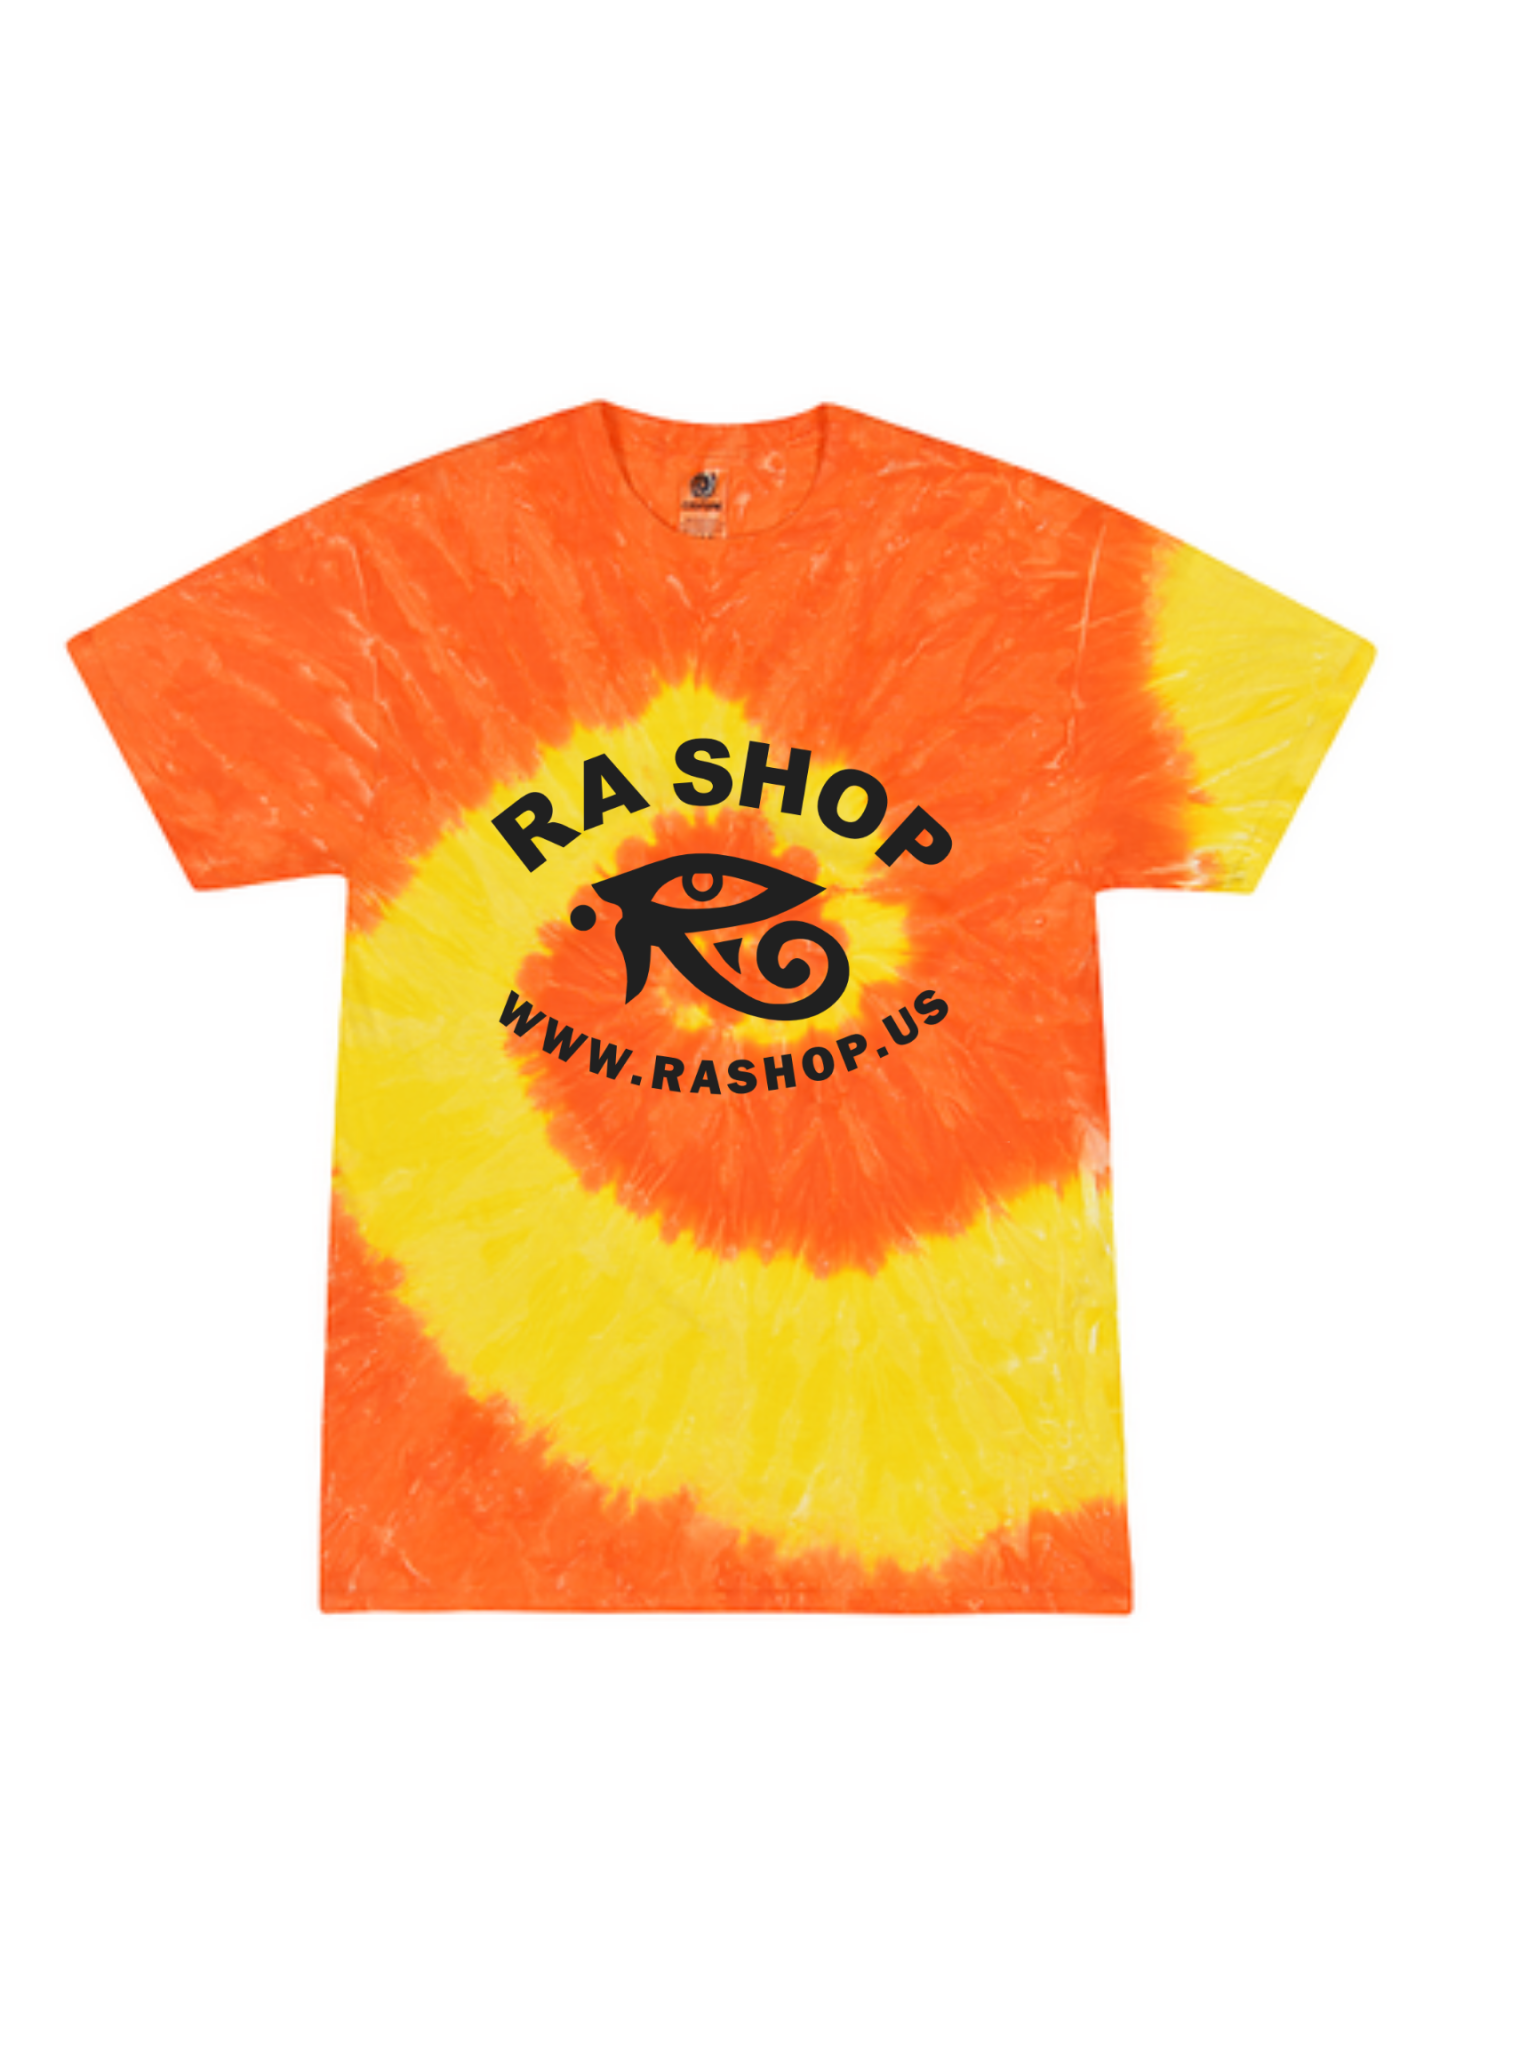 Ra Shop Tie Dye T-Shirt Orange/Yel Lg